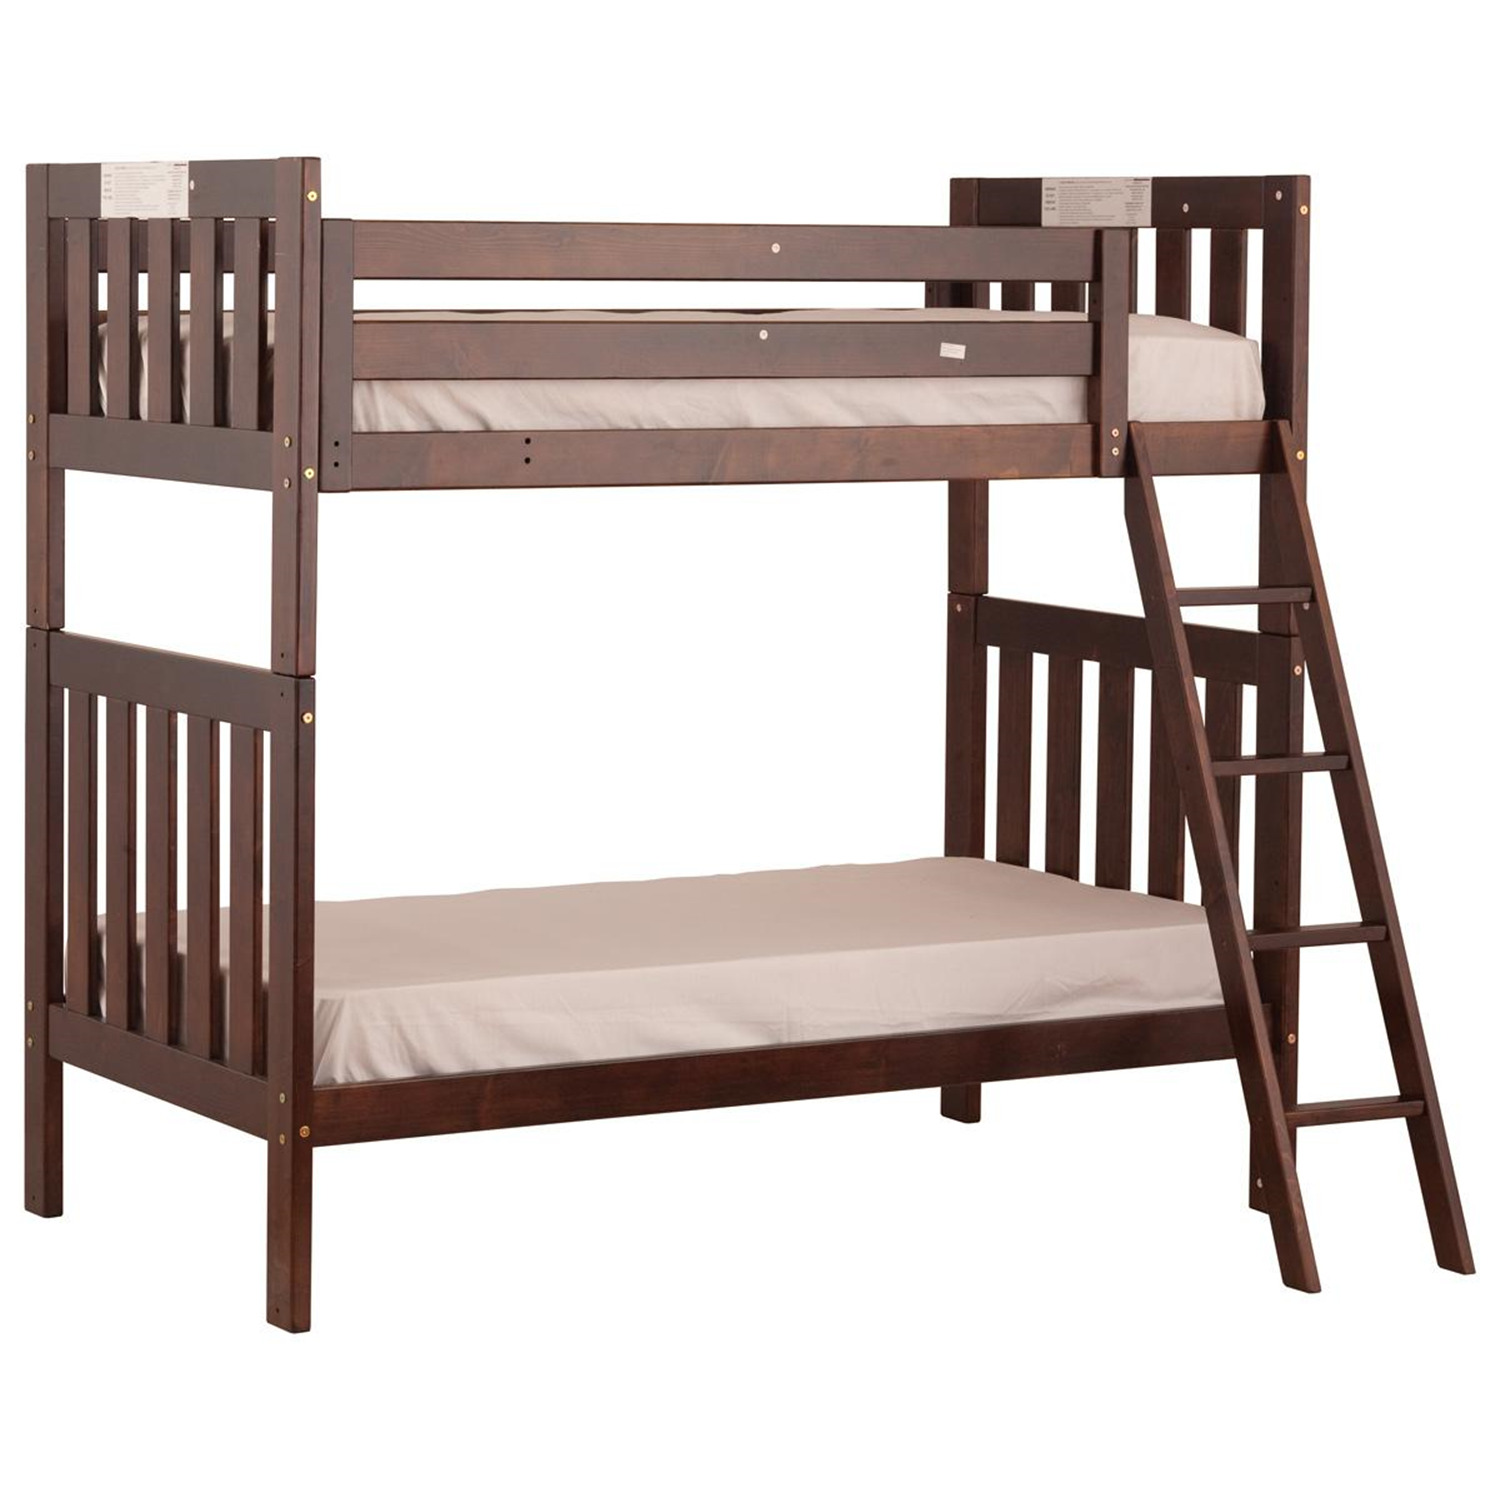 Canwood bunk bed canwood whistler junior wood loft bunk bed in 2131 5 canwood whistler junior - Canwood whistler ...